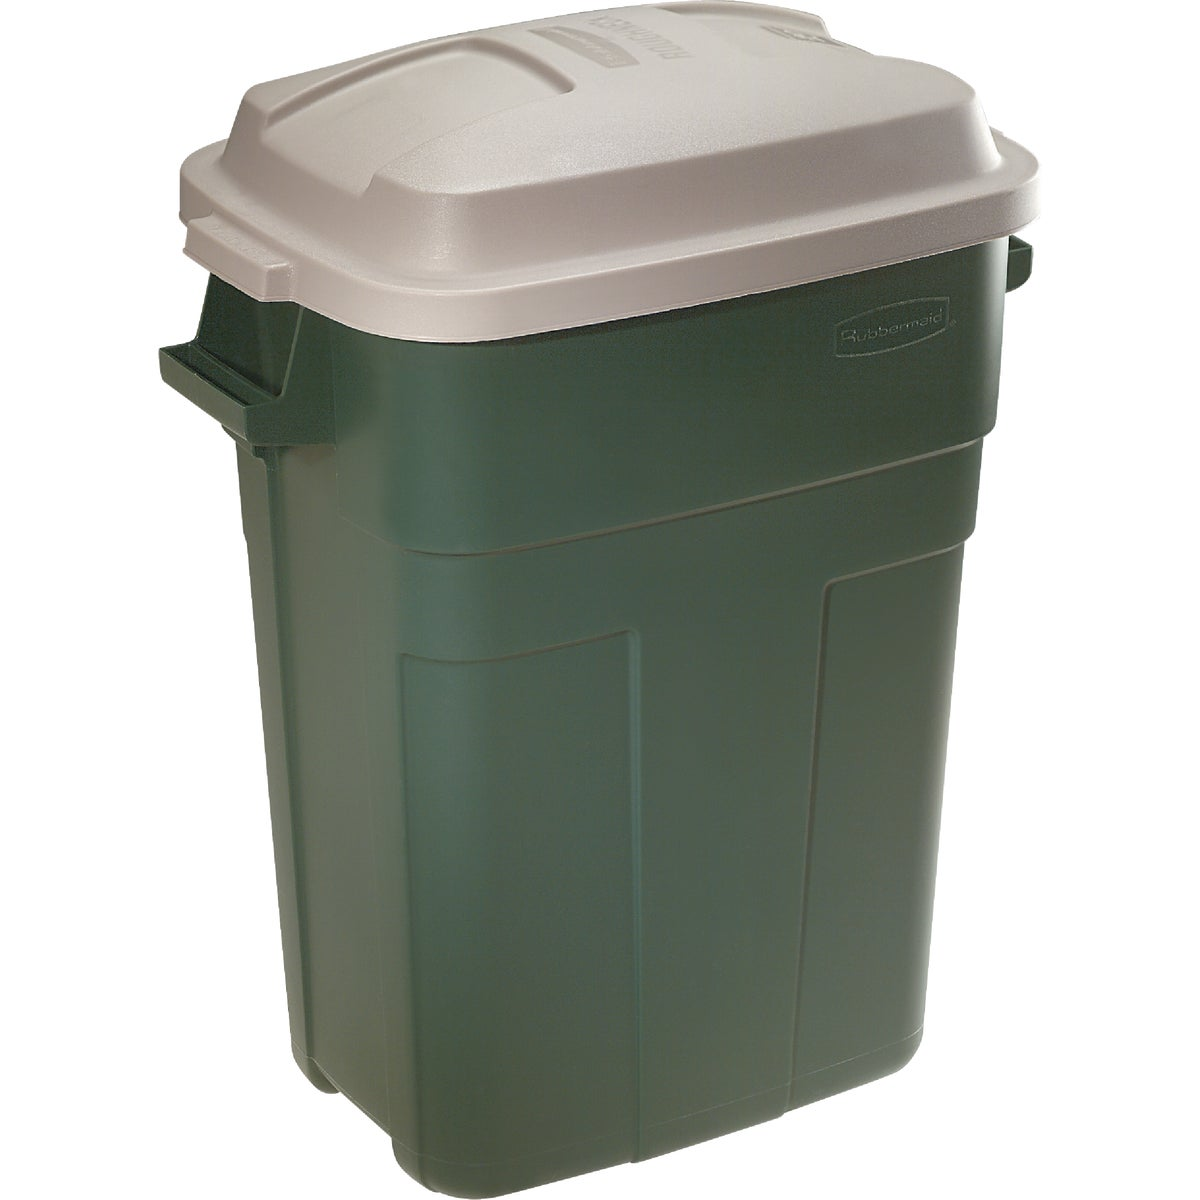 30GL GREEN TRASH CAN - 297900 EGRN by Rubbermaid Home